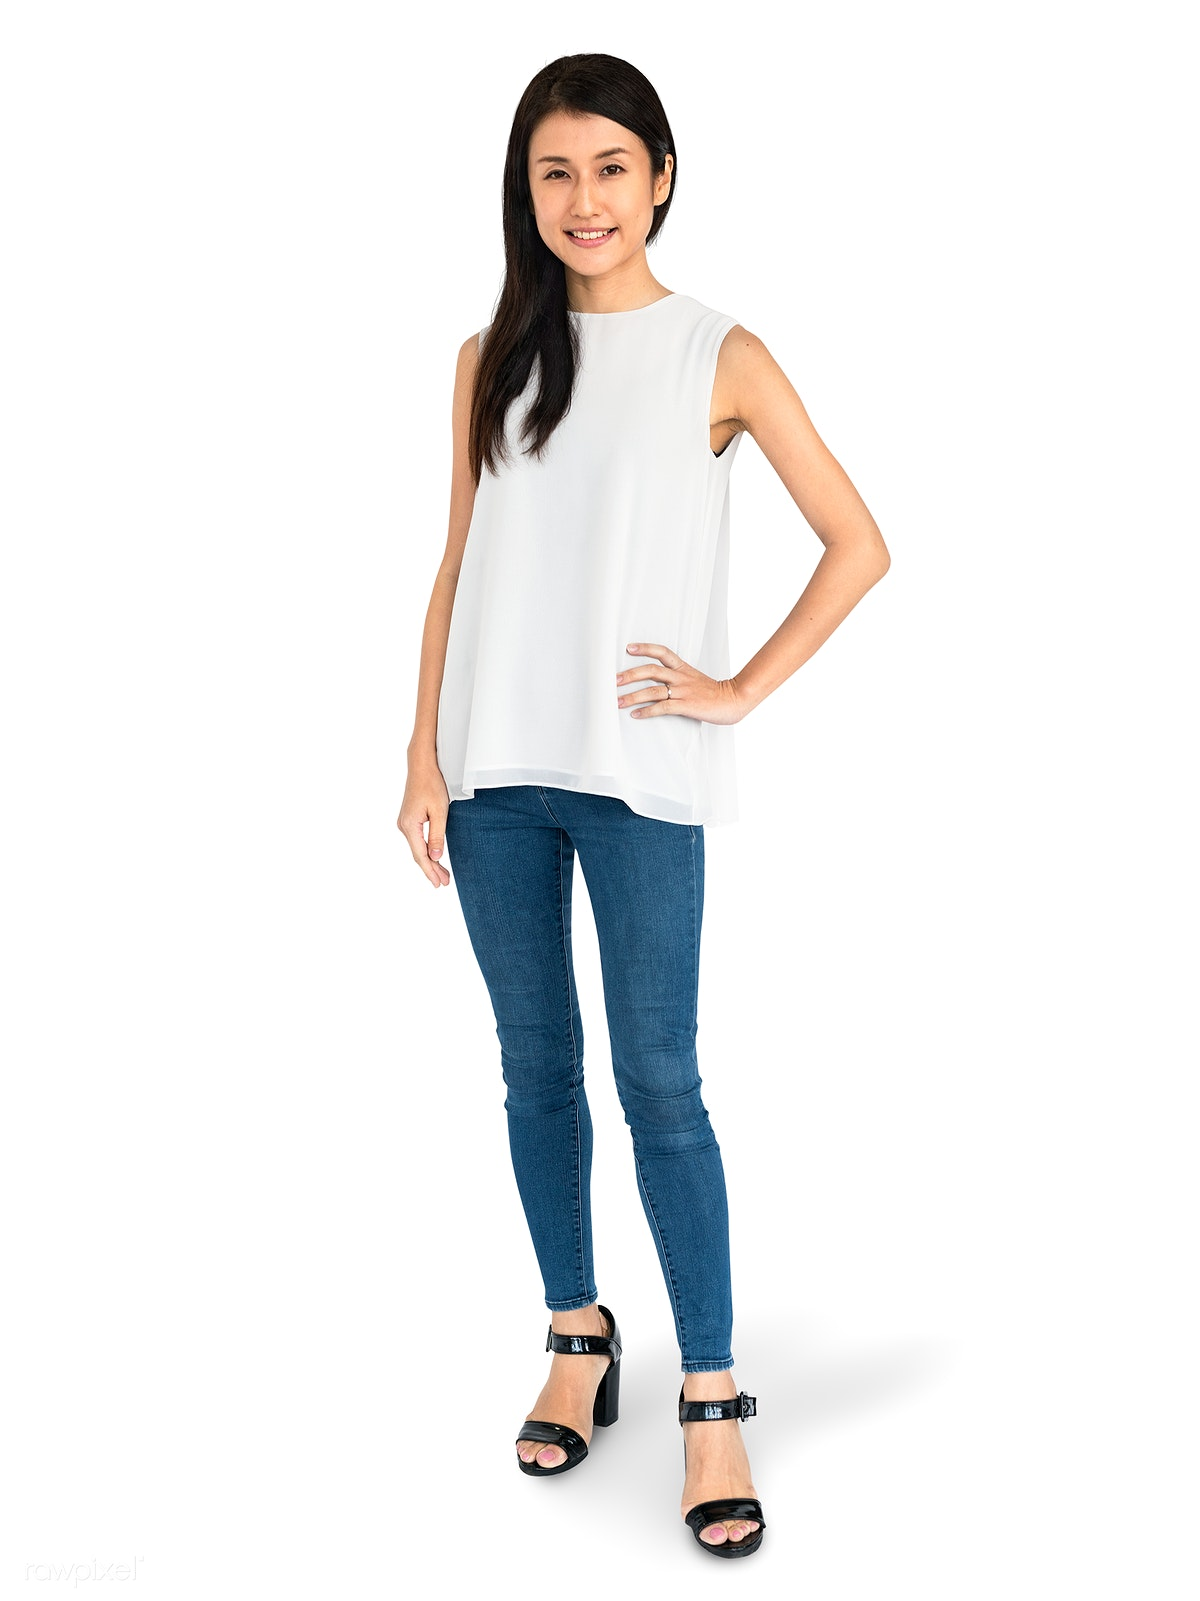 fe8dee3880 Cheerful Asian woman in jeans character isolated on a white background